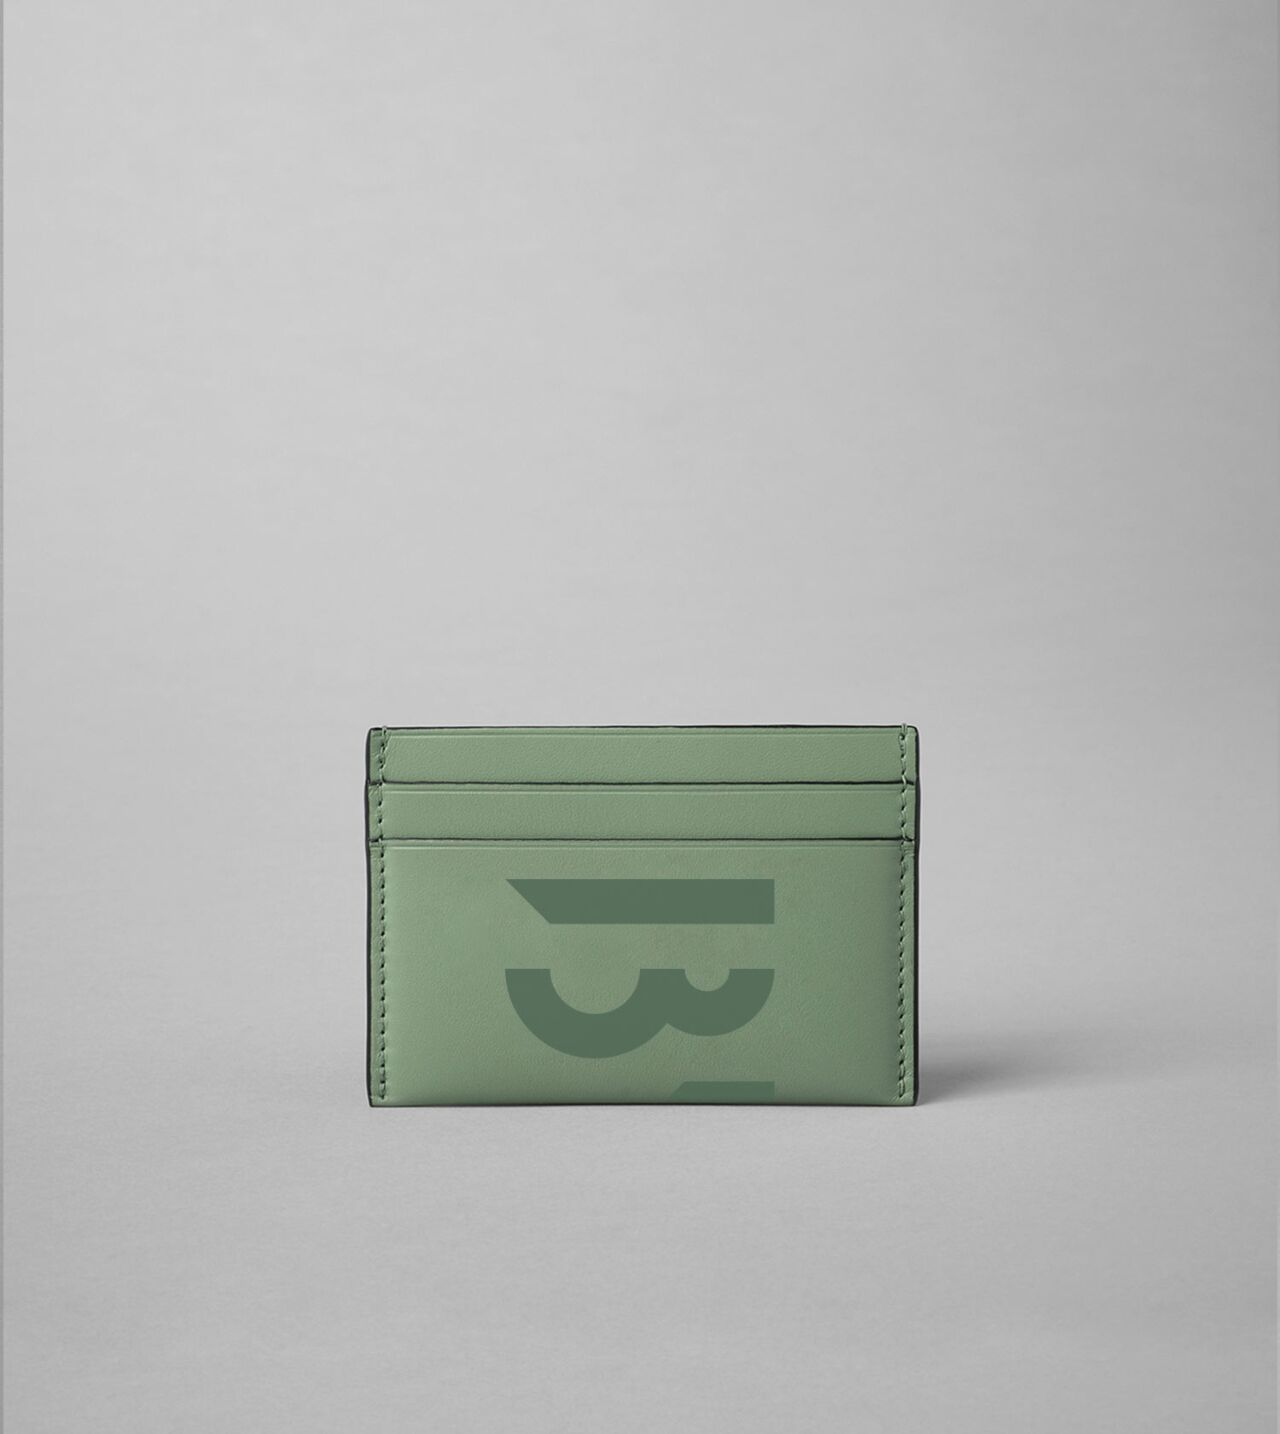 Picture of Byredo Credit card holder in Light green